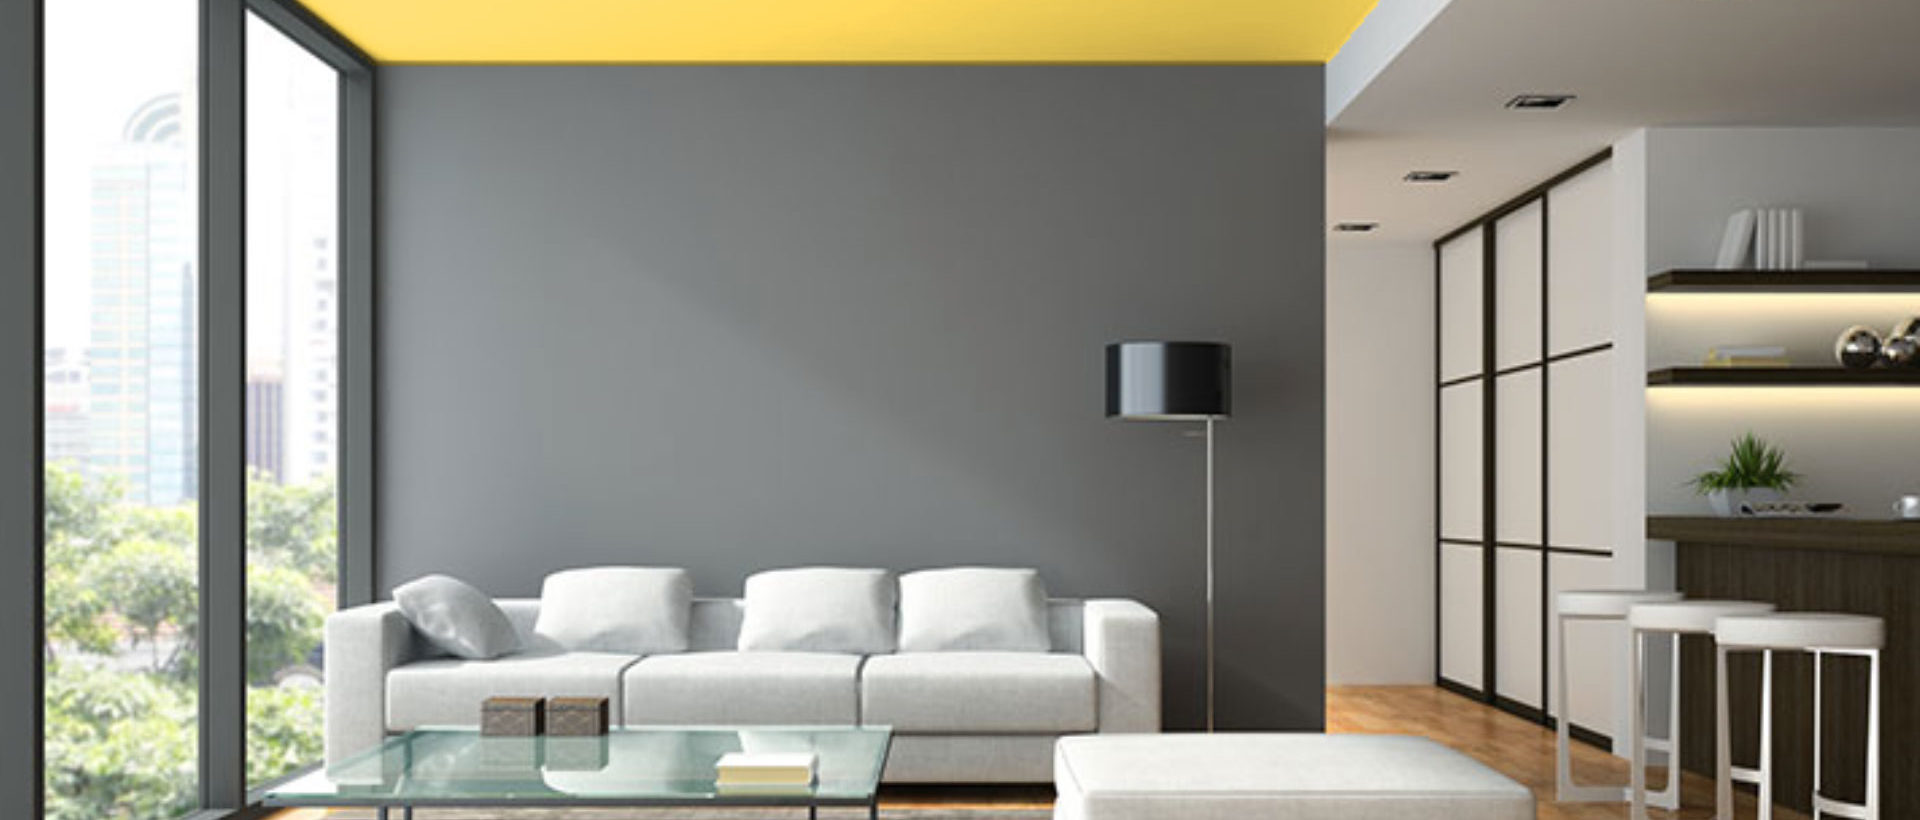 Painting a ceiling adds interest to a room. White is no longer the standard ceiling colour